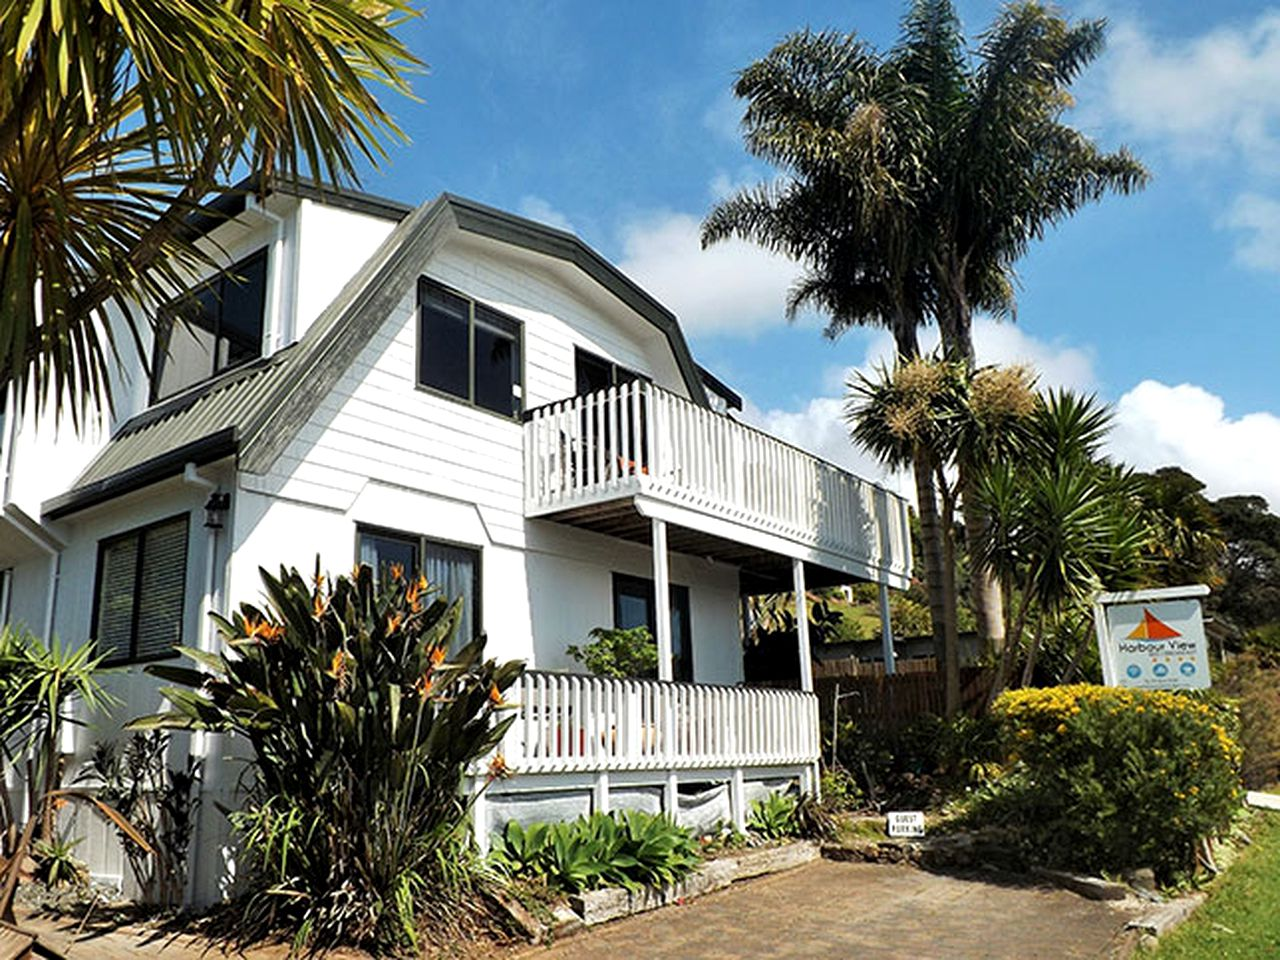 Nature Lodges (Tairua, North Island, New Zealand)